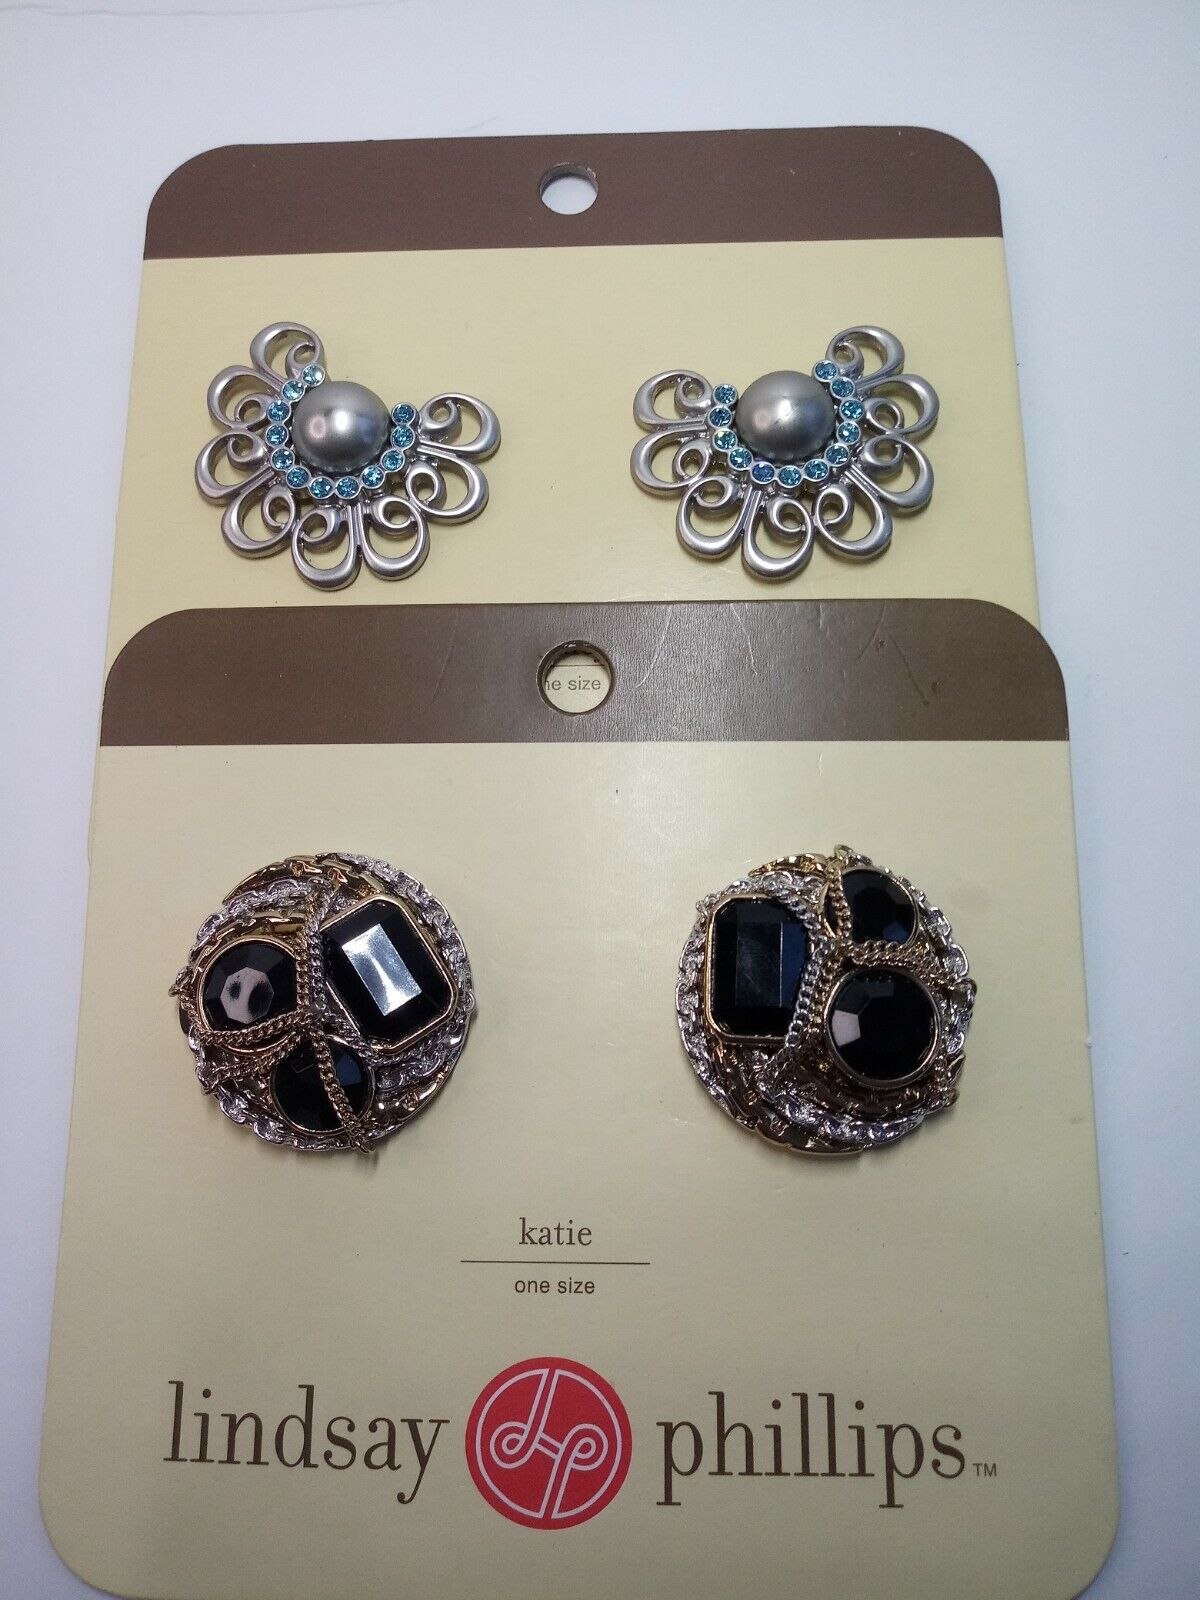 Lindsay phillips snaps Lot Of 2 Jewels Change Ur Style Not Your Sole Black Blue